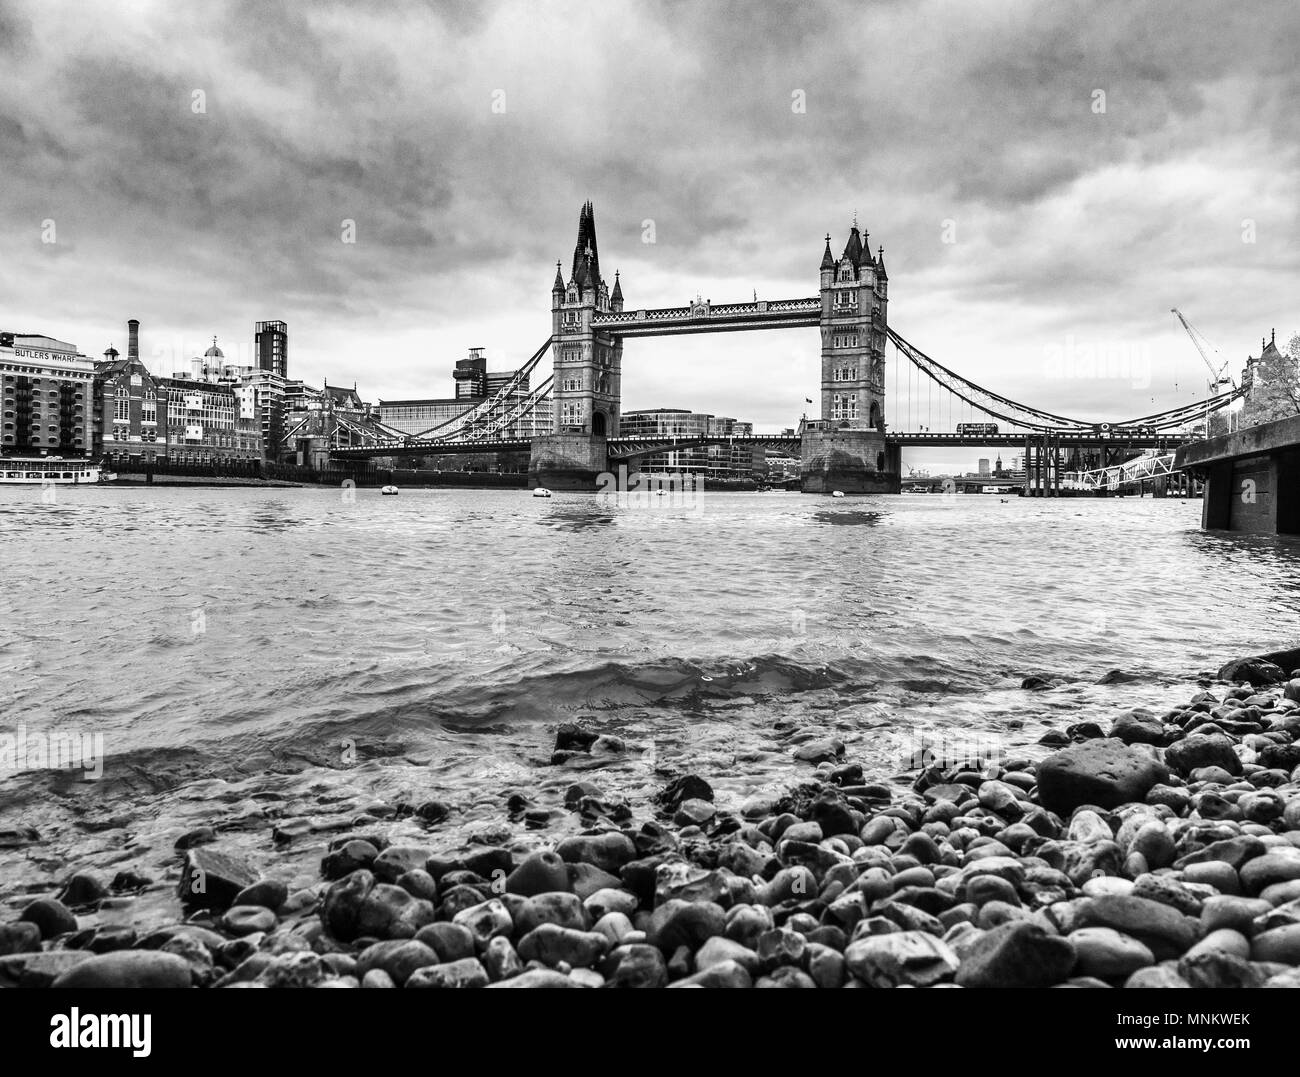 North pebbled shore of the river Thames in London with Tower Bridge. The top of the Shard can just be seen in the distance. - Stock Image